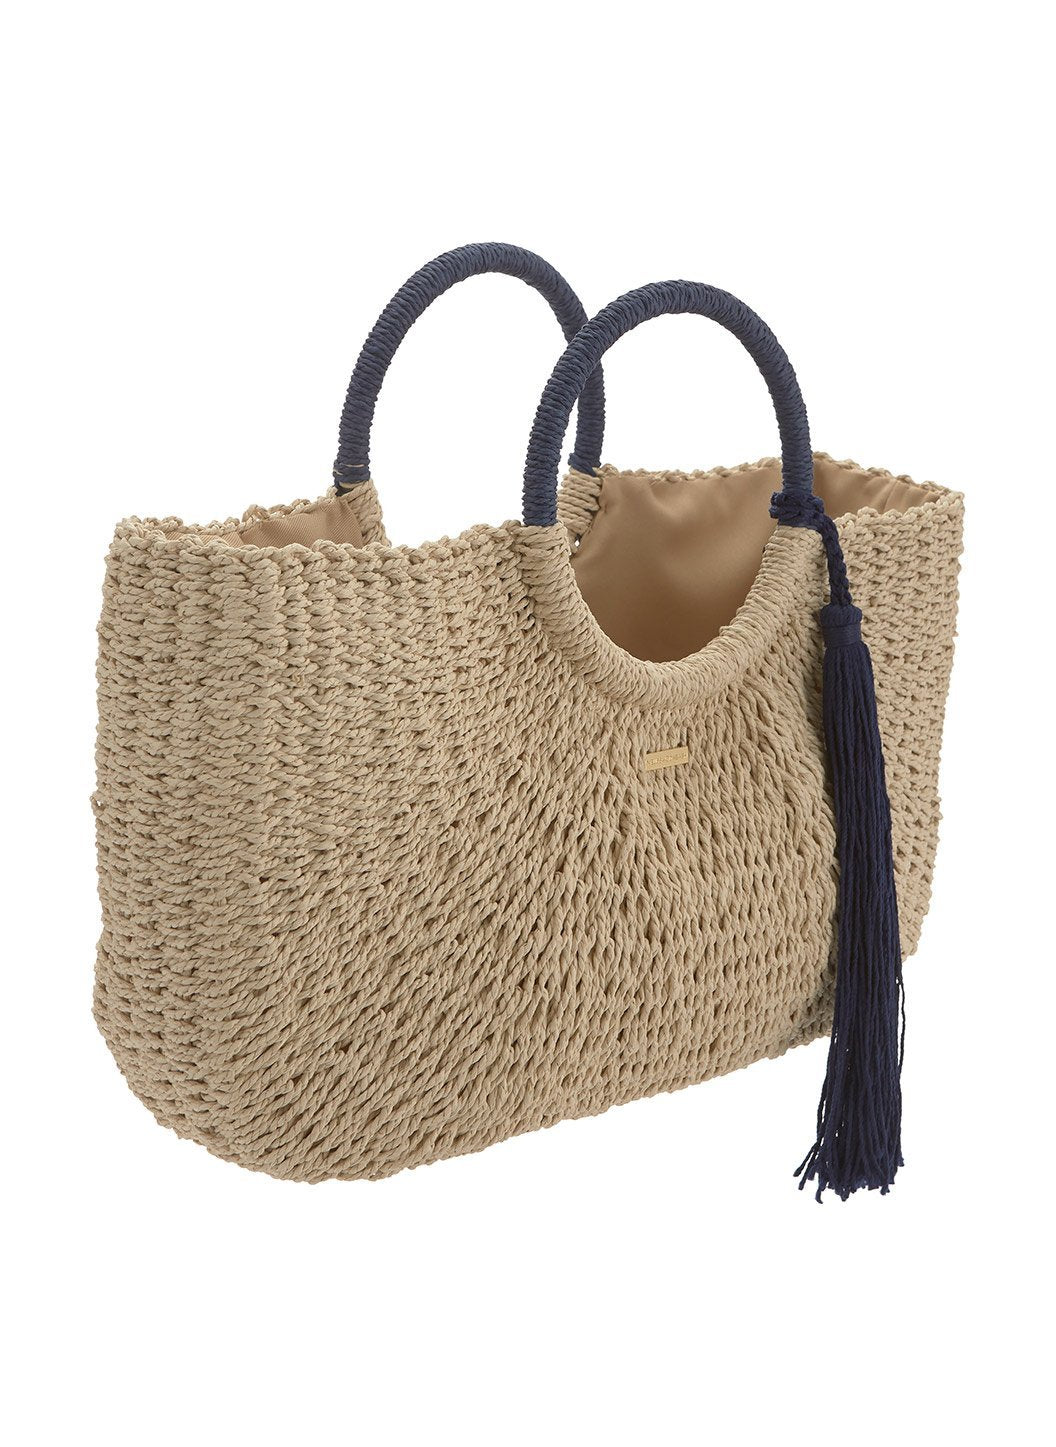 sorrento woven basket bag natural navy 2019 2